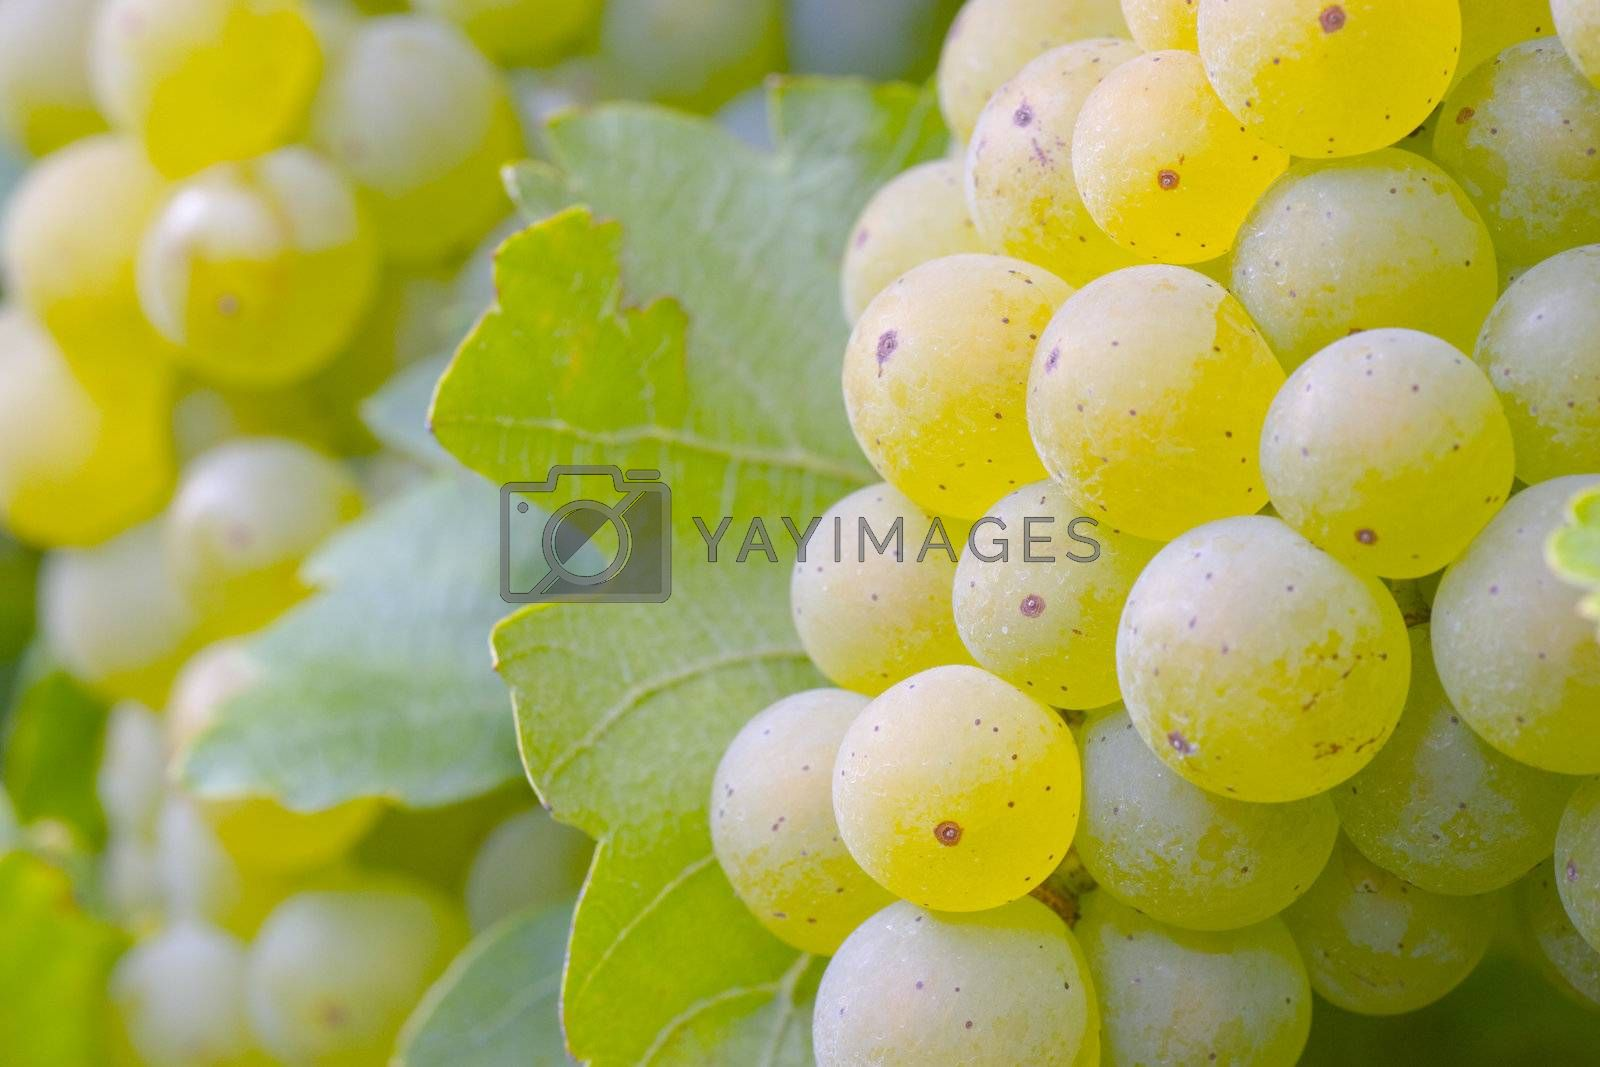 White grapes on the vine. Focus on the grapes in the foreground